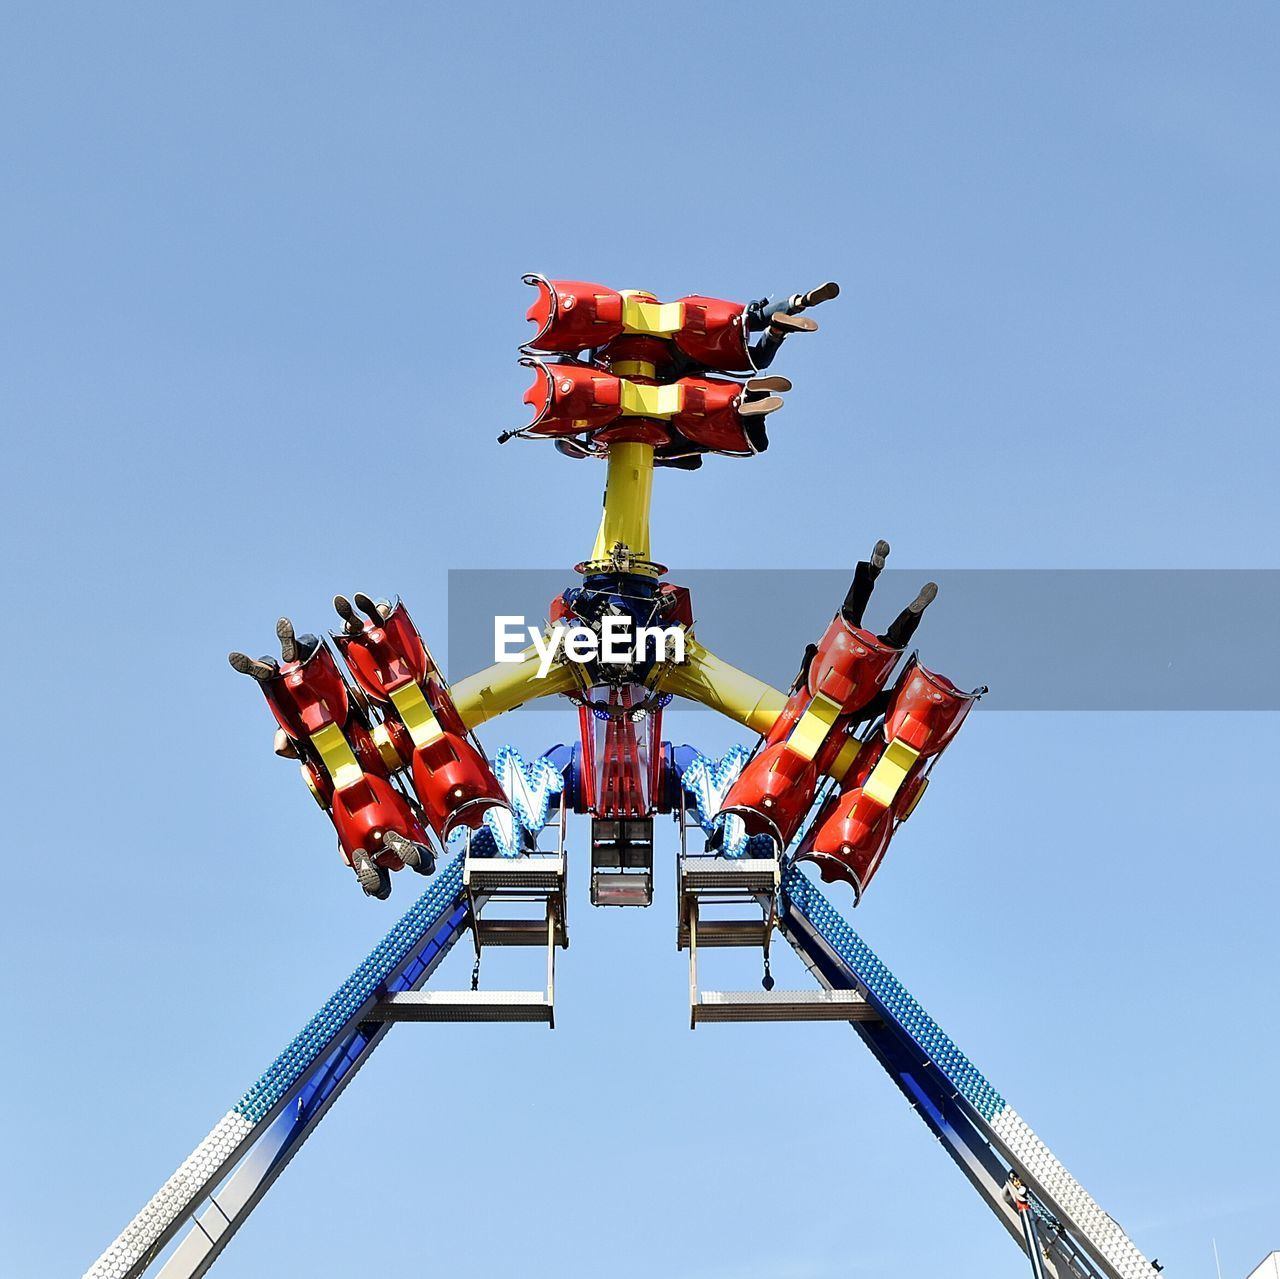 Low Angle View Of Ride Against Blue Sky